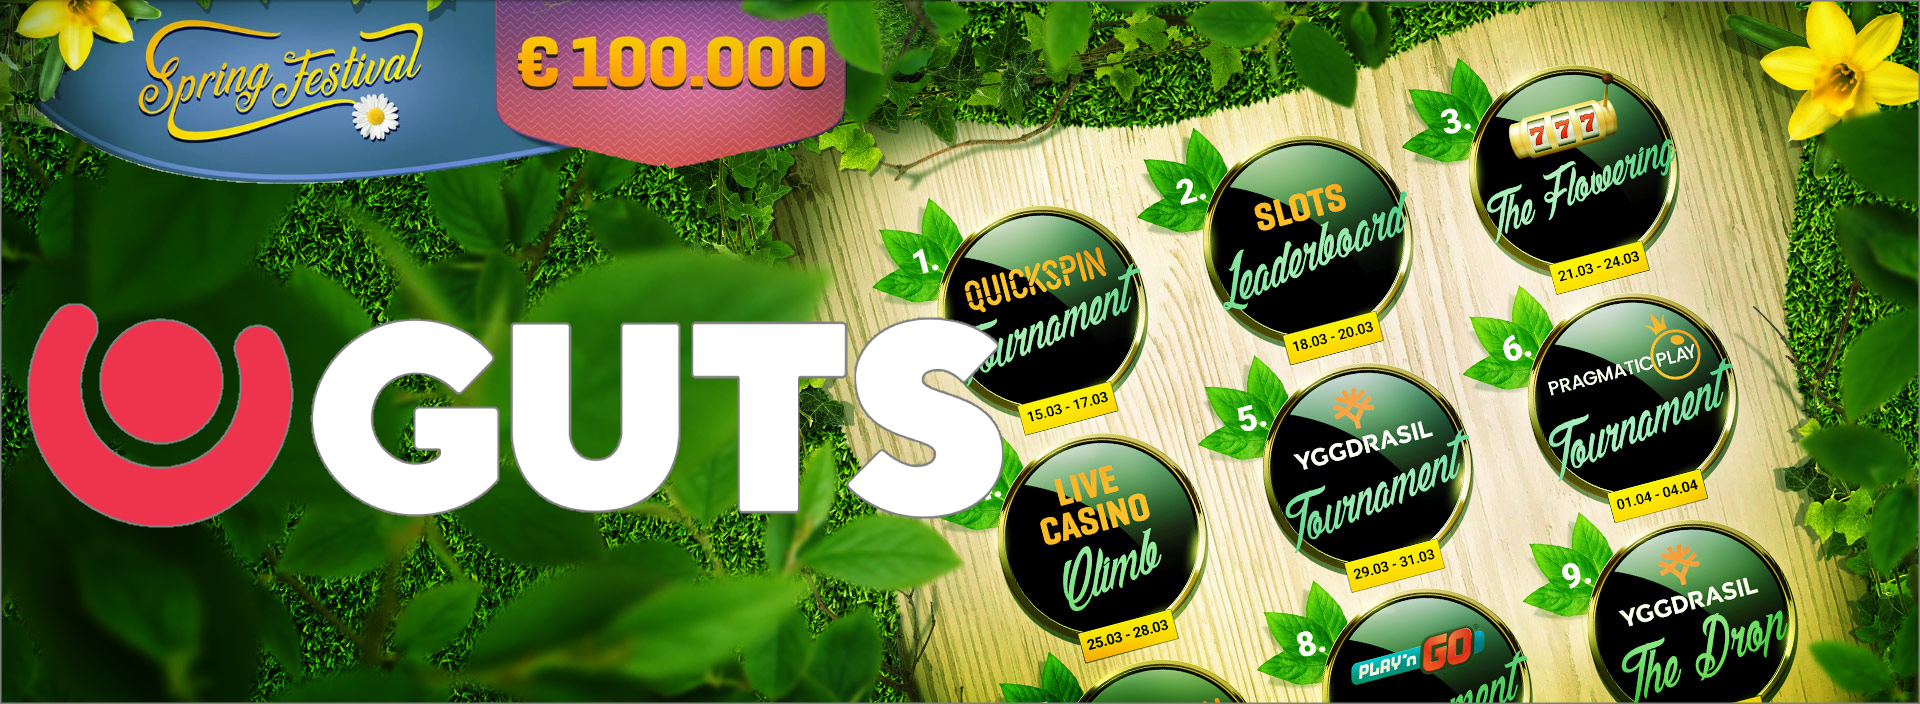 Spring Festival at Guts, €100.000 in prizes